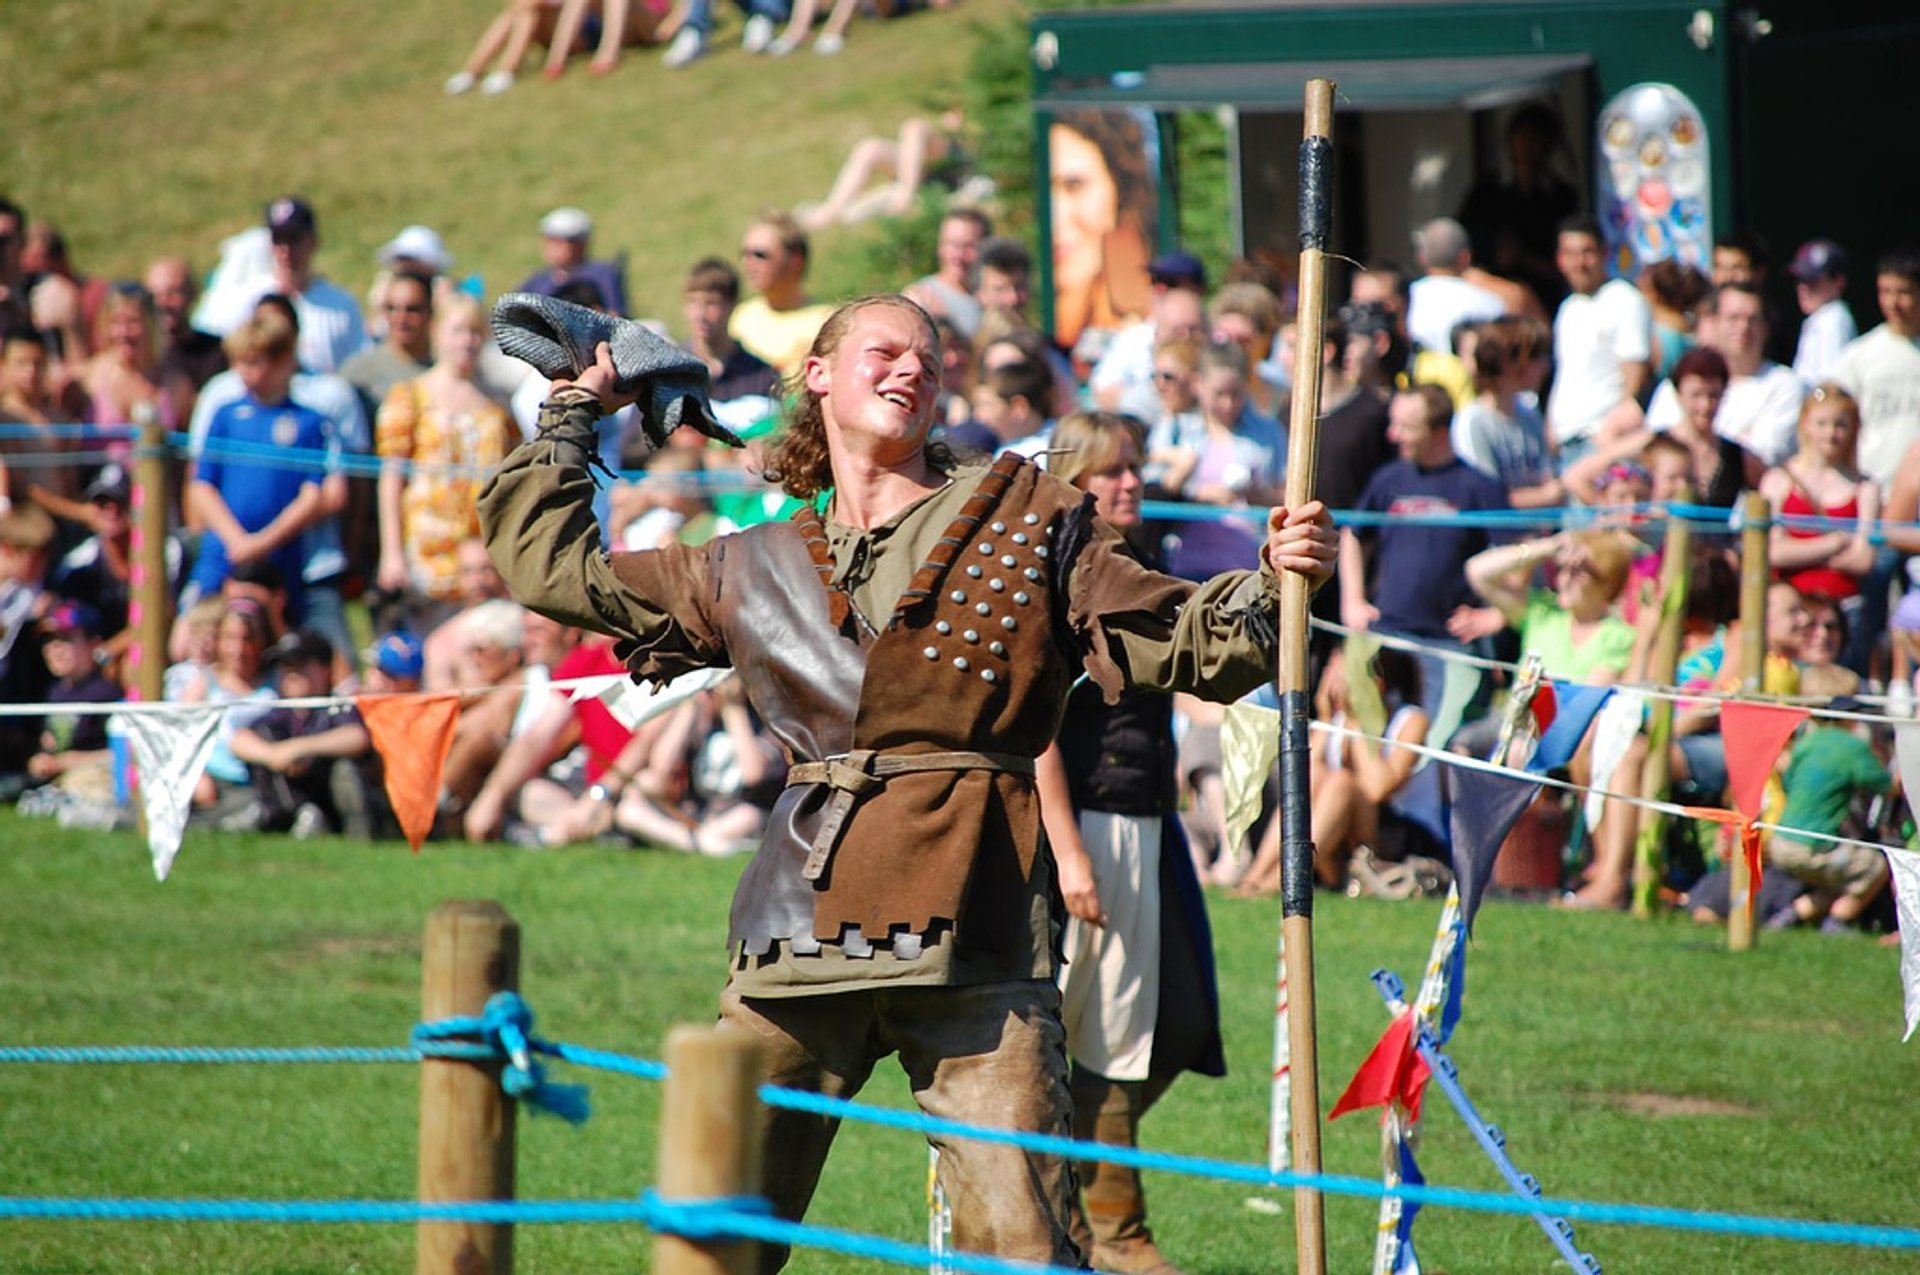 Robin Hood Festival  in England 2020 - Best Time